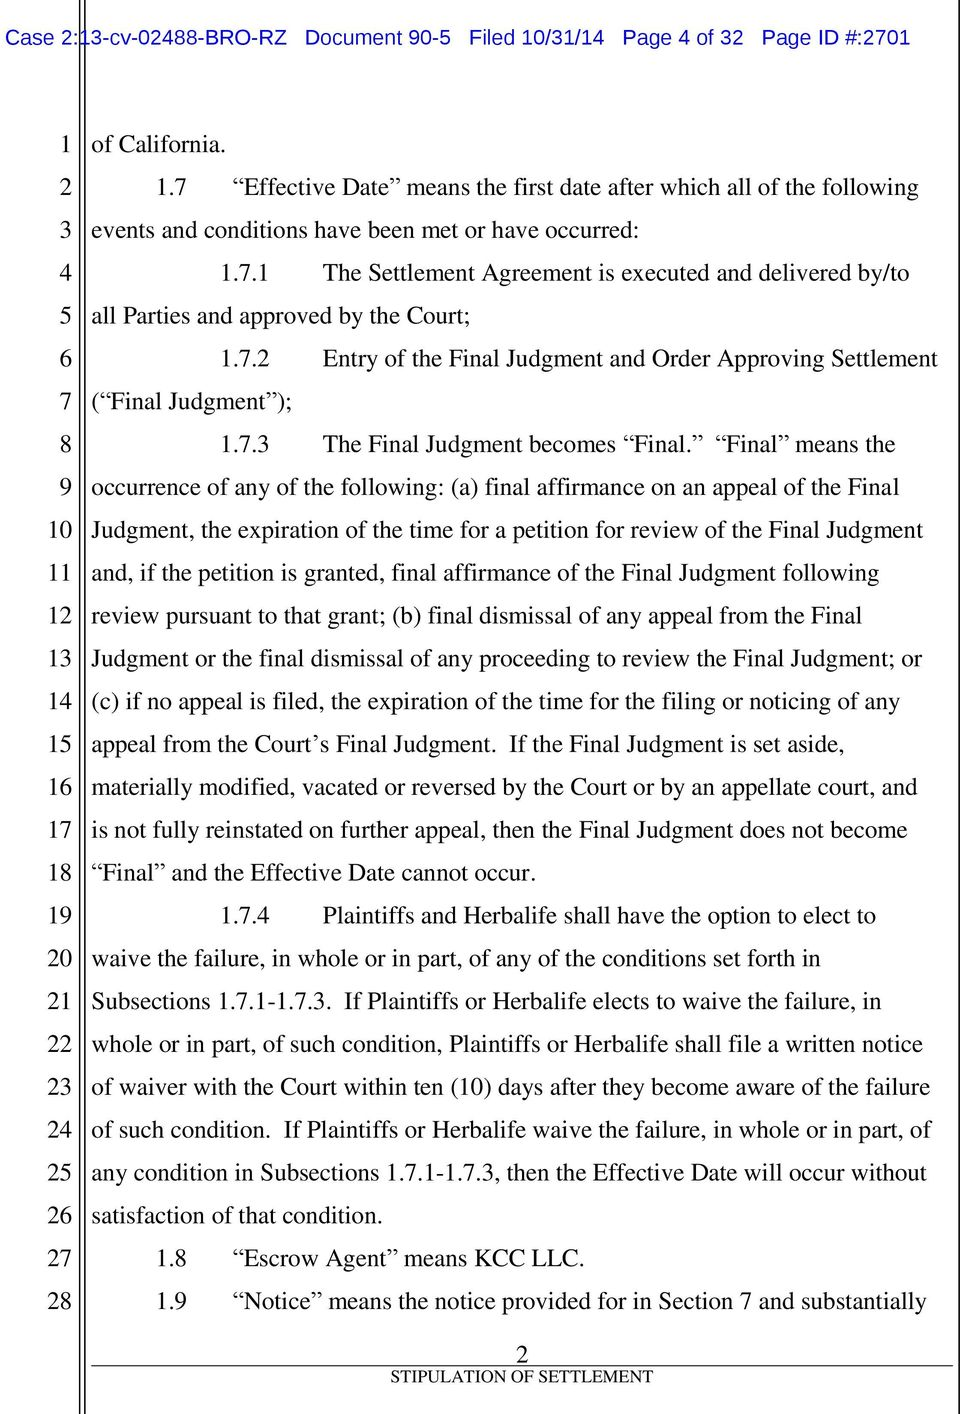 Final means the occurrence of any of the following: (a) final affirmance on an appeal of the Final Judgment, the expiration of the time for a petition for review of the Final Judgment and, if the